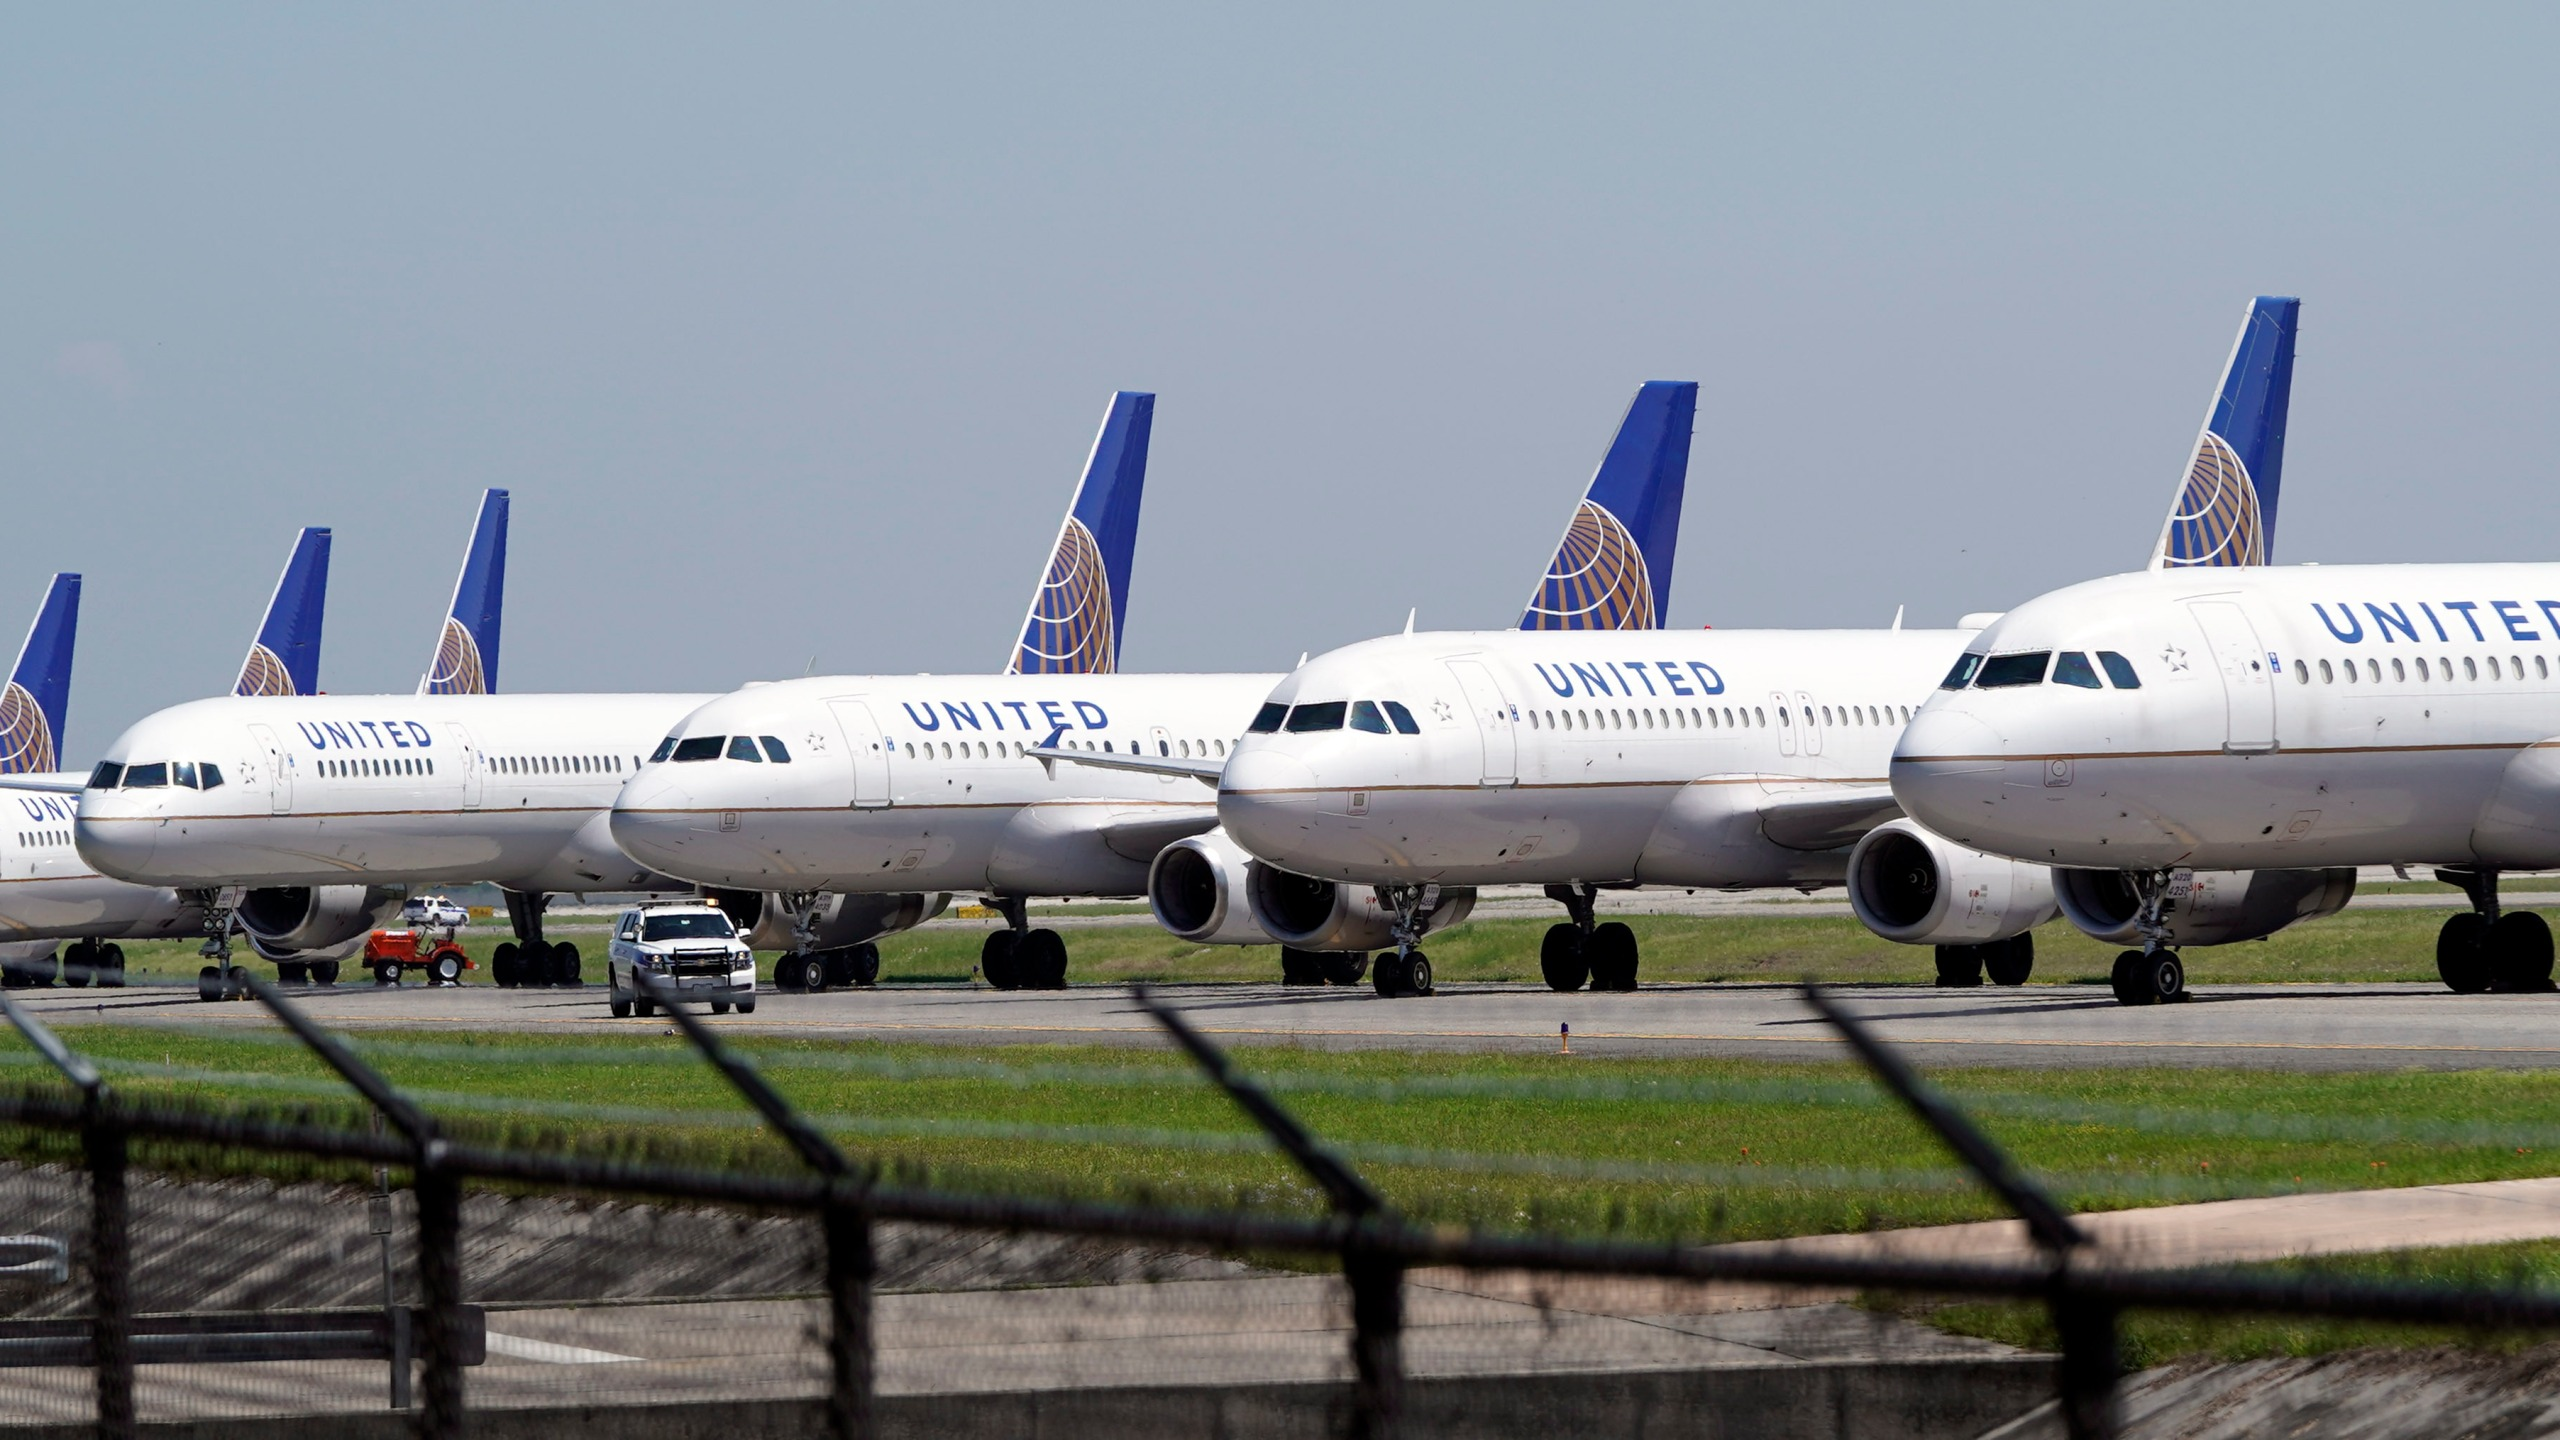 United Airelines planes